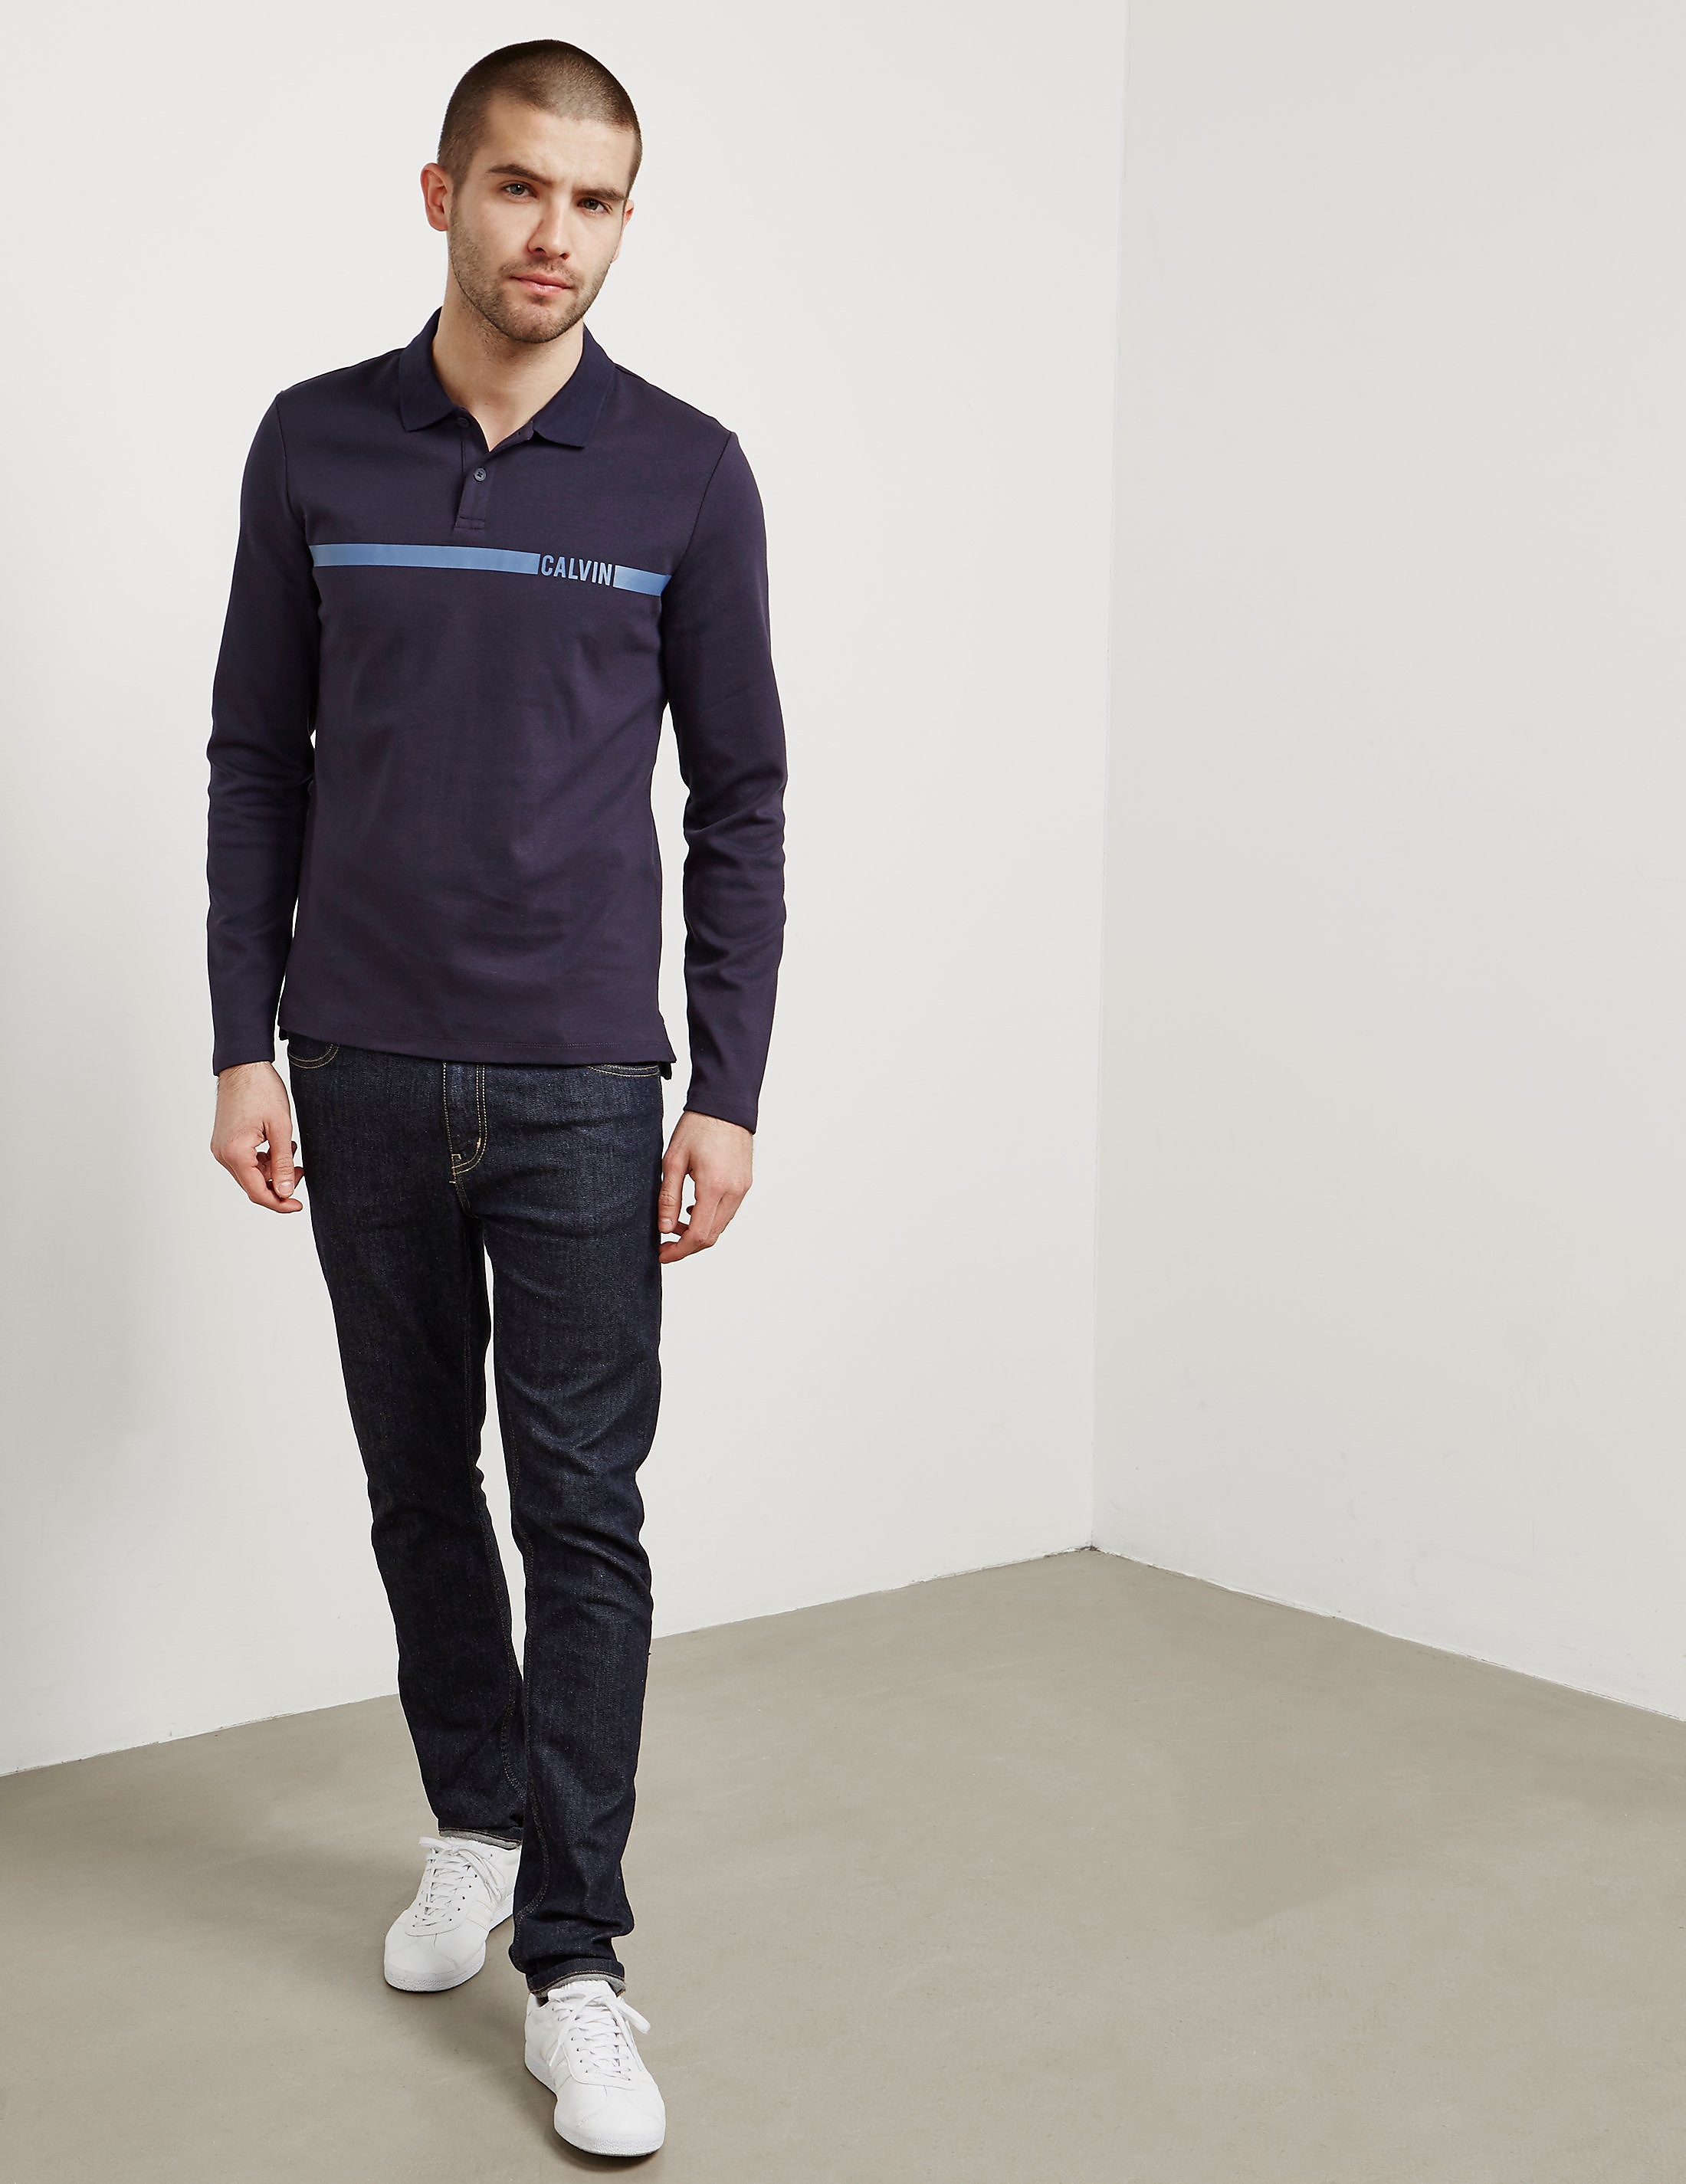 Calvin Klein Band Long Sleeve Polo Shirt